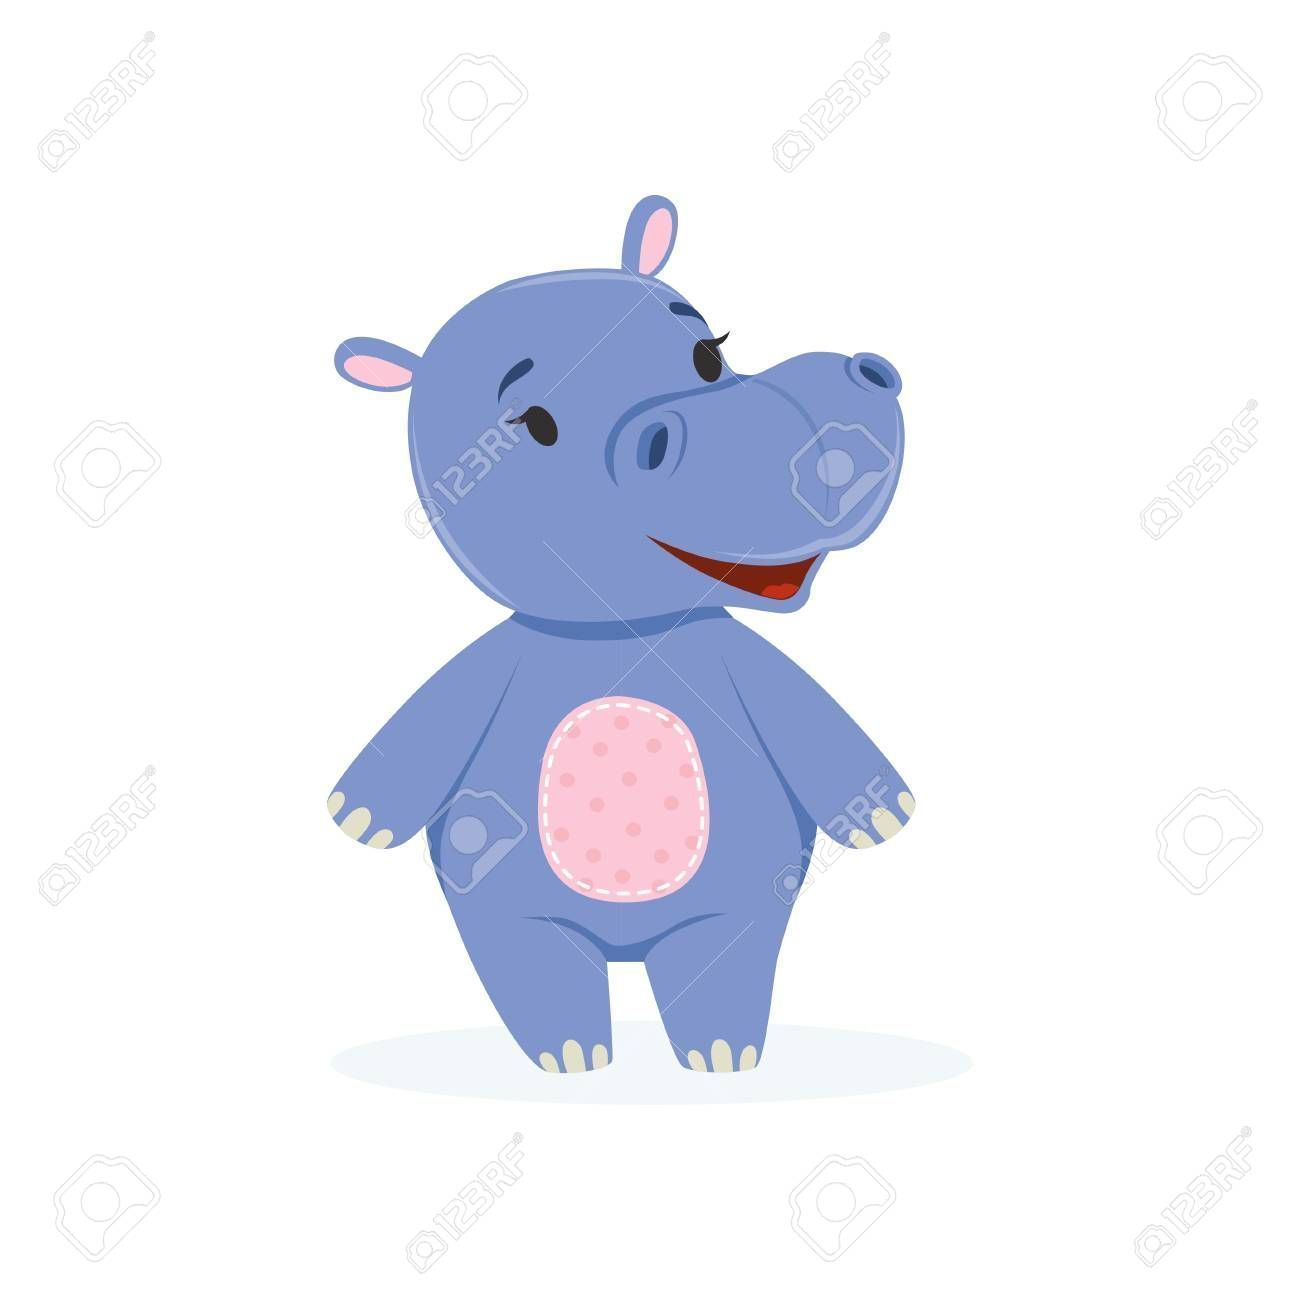 Funny baby hippo character, cute behemoth African animal vector Illustration on a white background Illustration , #Ad, #character, #cute, #behemoth, #Funny, #baby #babyhippo Funny baby hippo character, cute behemoth African animal vector Illustration on a white background Illustration , #Ad, #character, #cute, #behemoth, #Funny, #baby #babyhippo Funny baby hippo character, cute behemoth African animal vector Illustration on a white background Illustration , #Ad, #character, #cute, #behemoth, #Fu #babyhippo